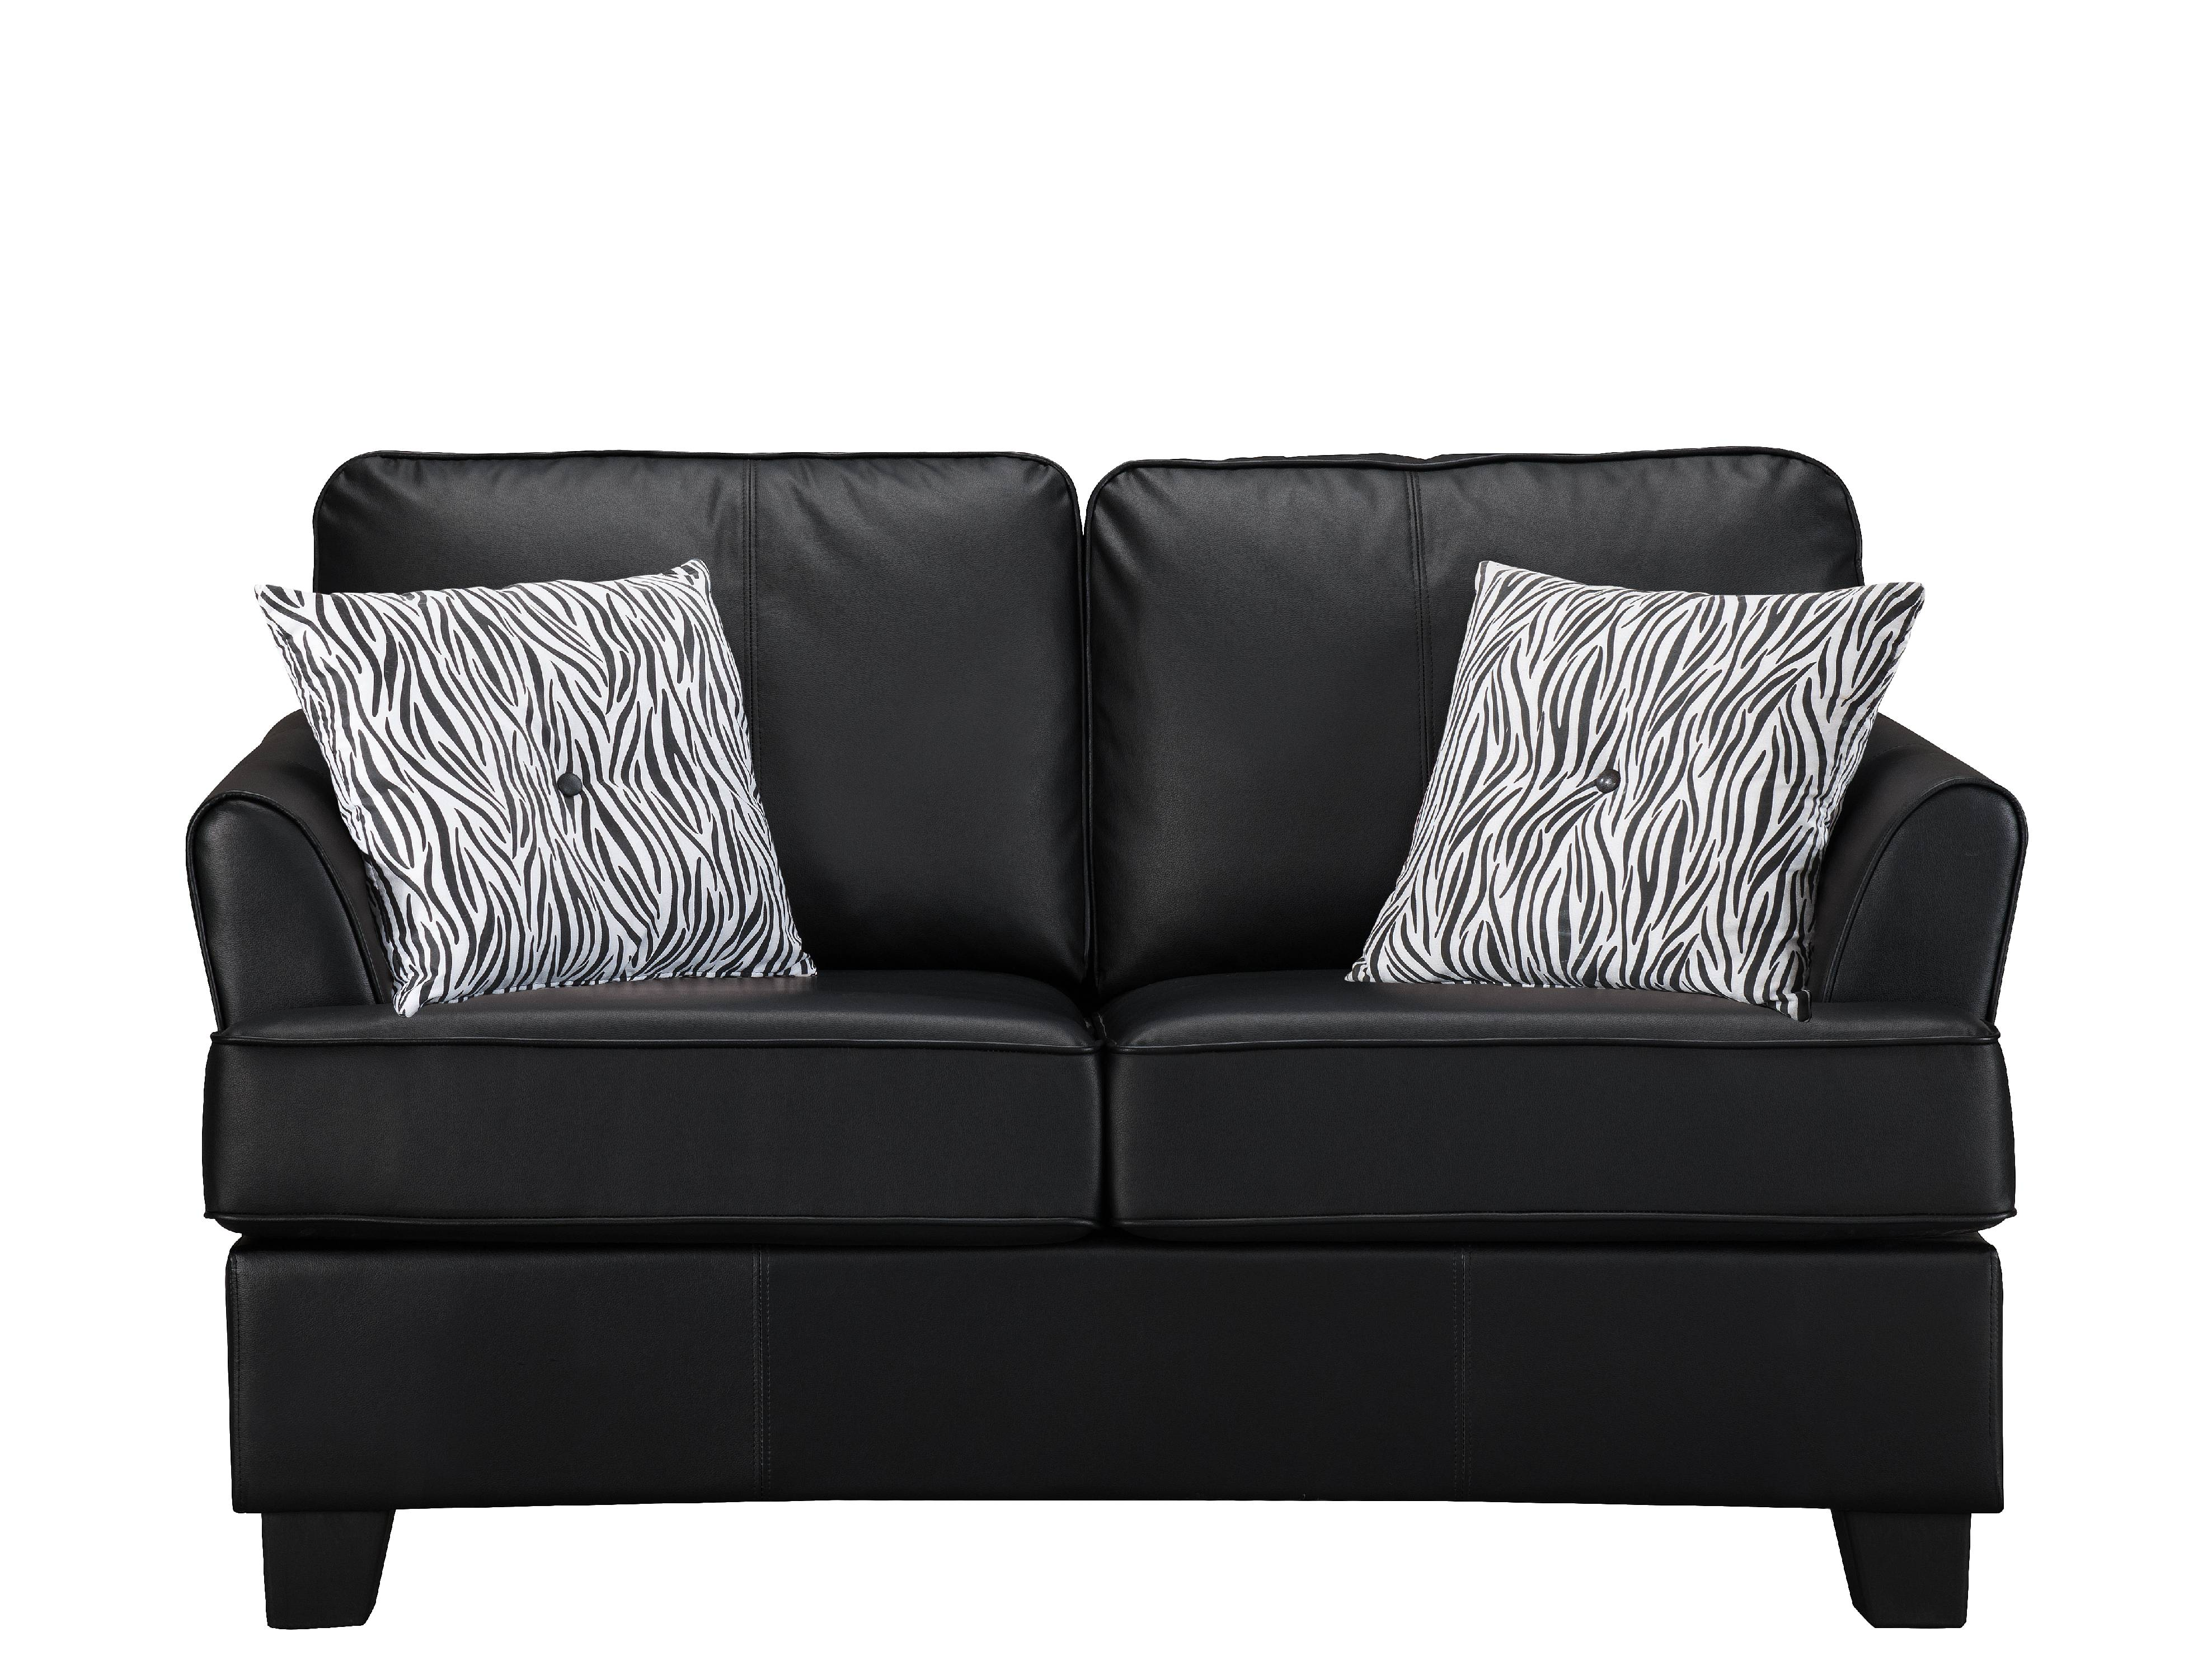 Good Black Faux Leather Twin Size Hide A Bed Sofa Sleeper (Solid Wood Frame)    Walmart.com